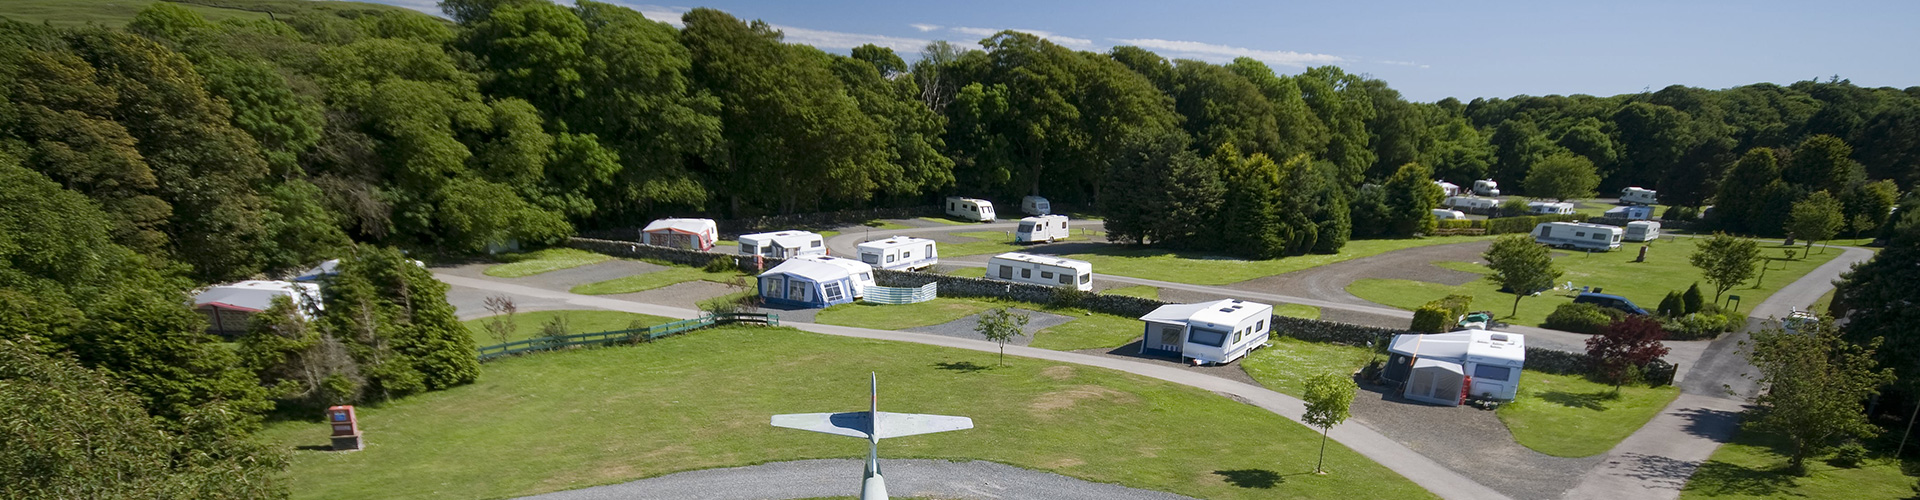 Mini Seasons at Brighouse Bay Holiday Park